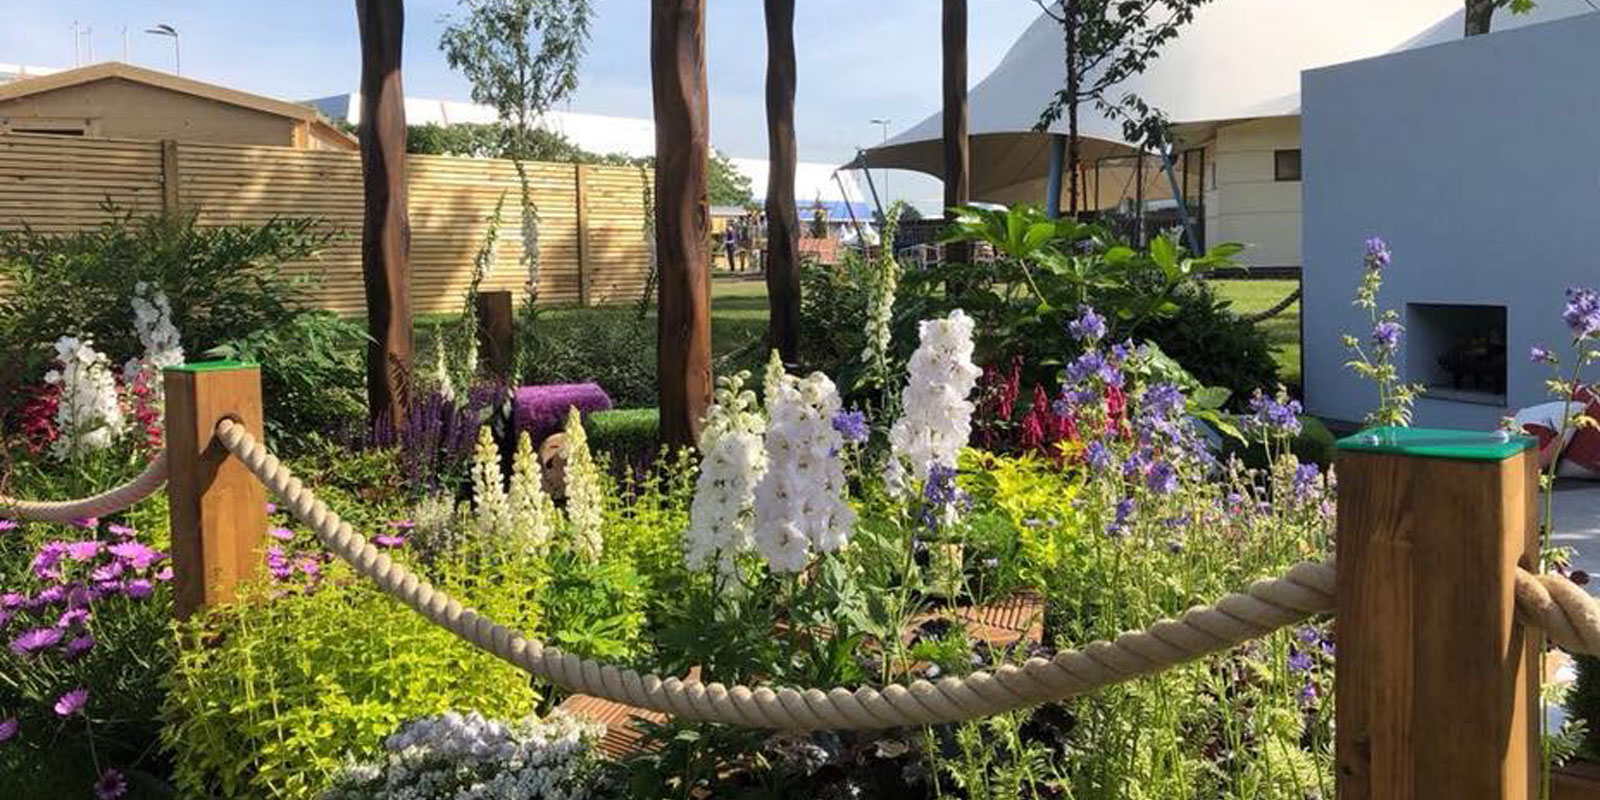 Timotay Landscapes shortlisted for APL Avenue Show Garden Competition